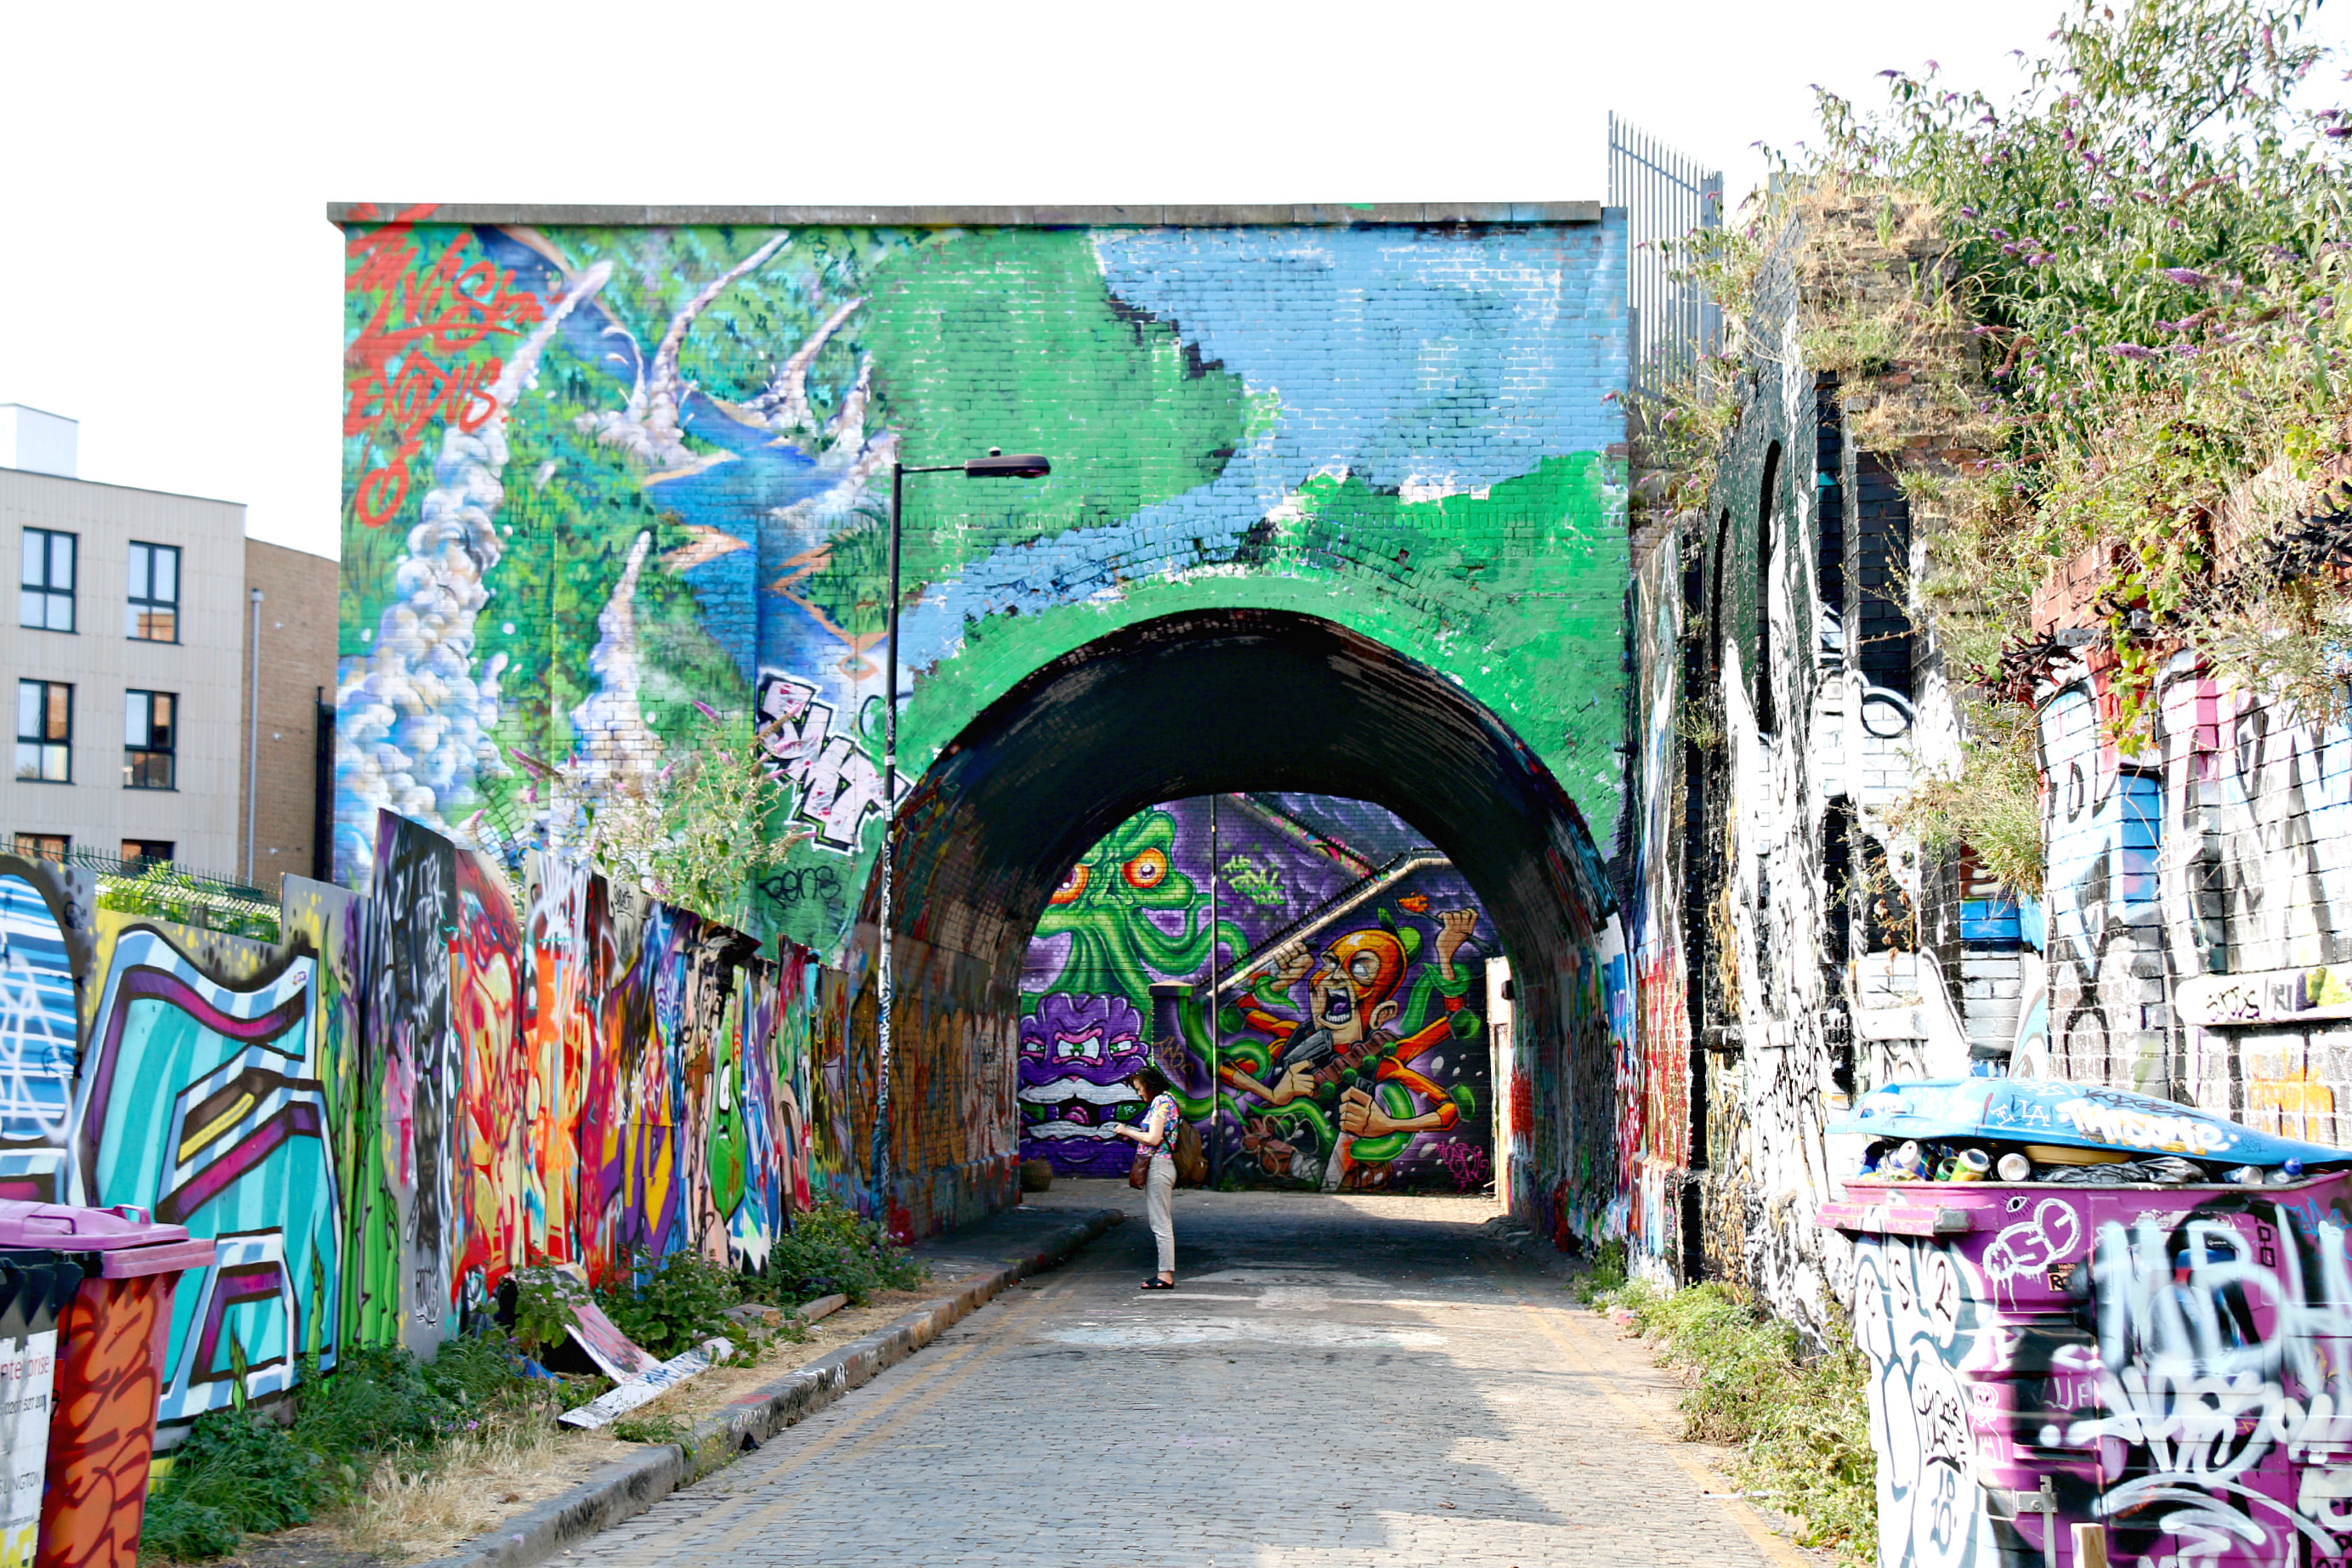 where to find art in shoreditch The Nomadic Community Garden and Fleet Street Hill